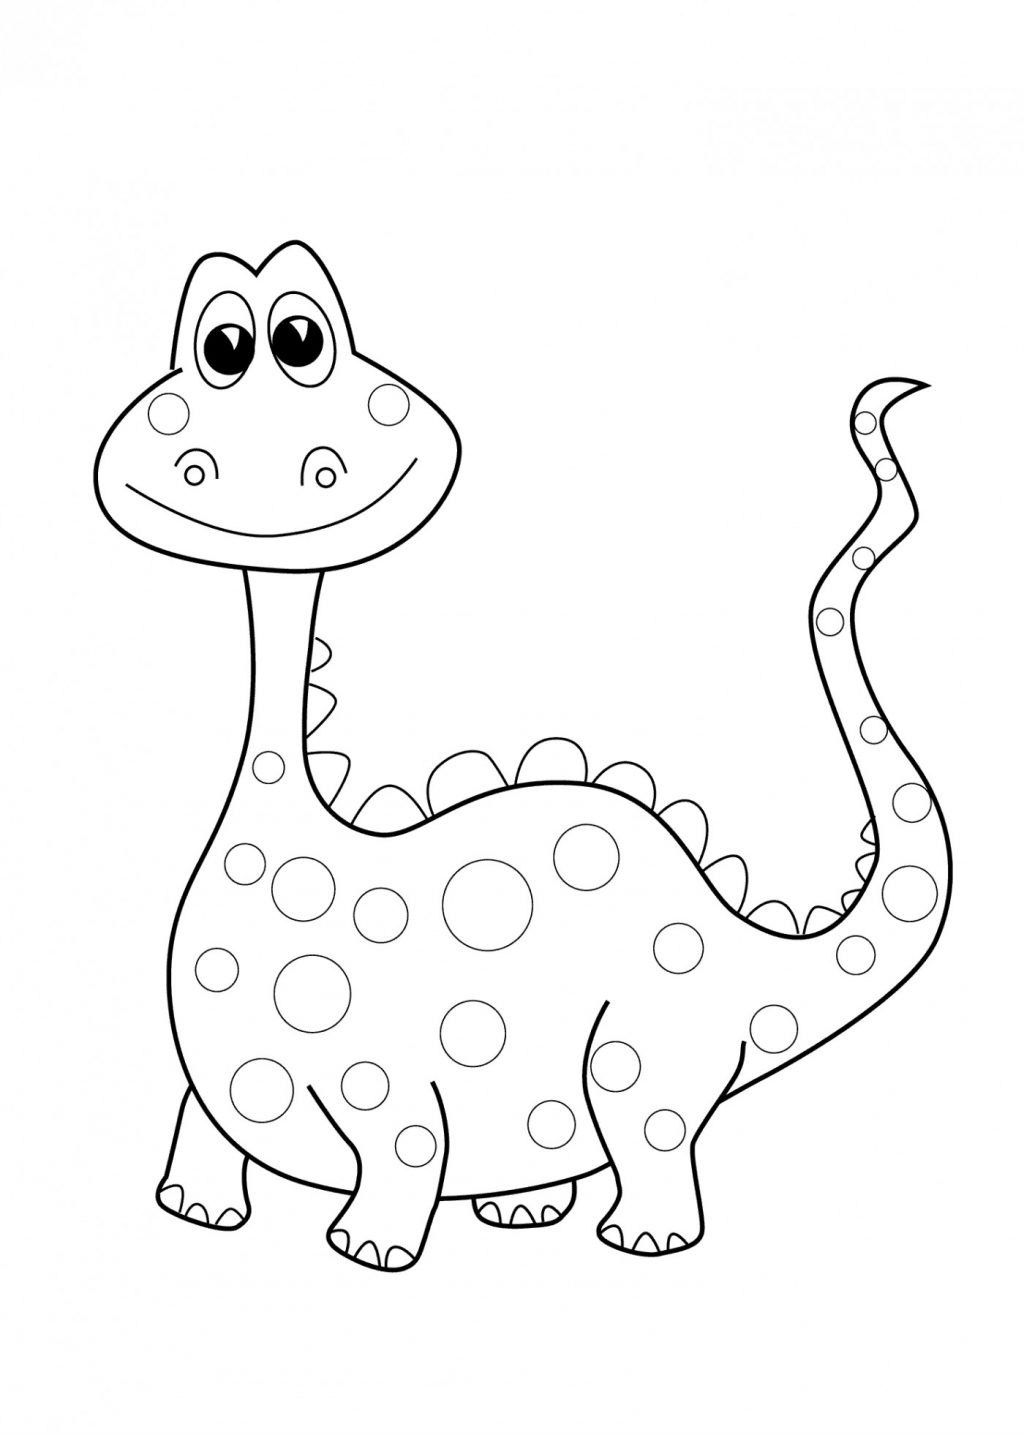 Free Preschool Coloring Pages Coloring Page Coloring Page